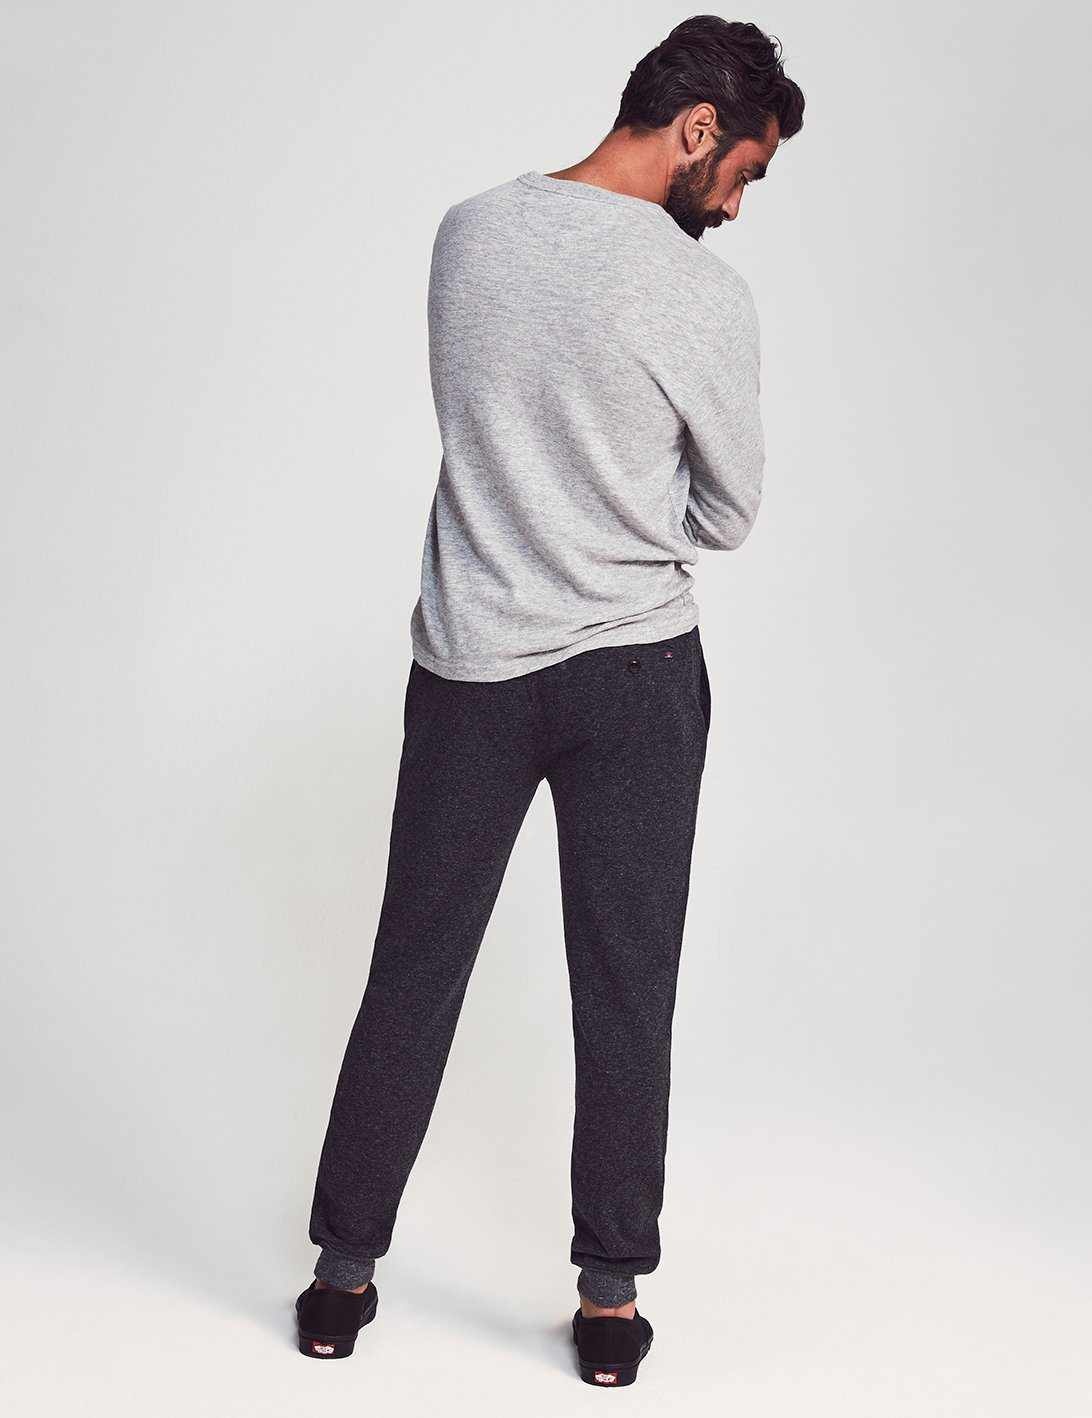 Dual Knit Joggers - Washed Black